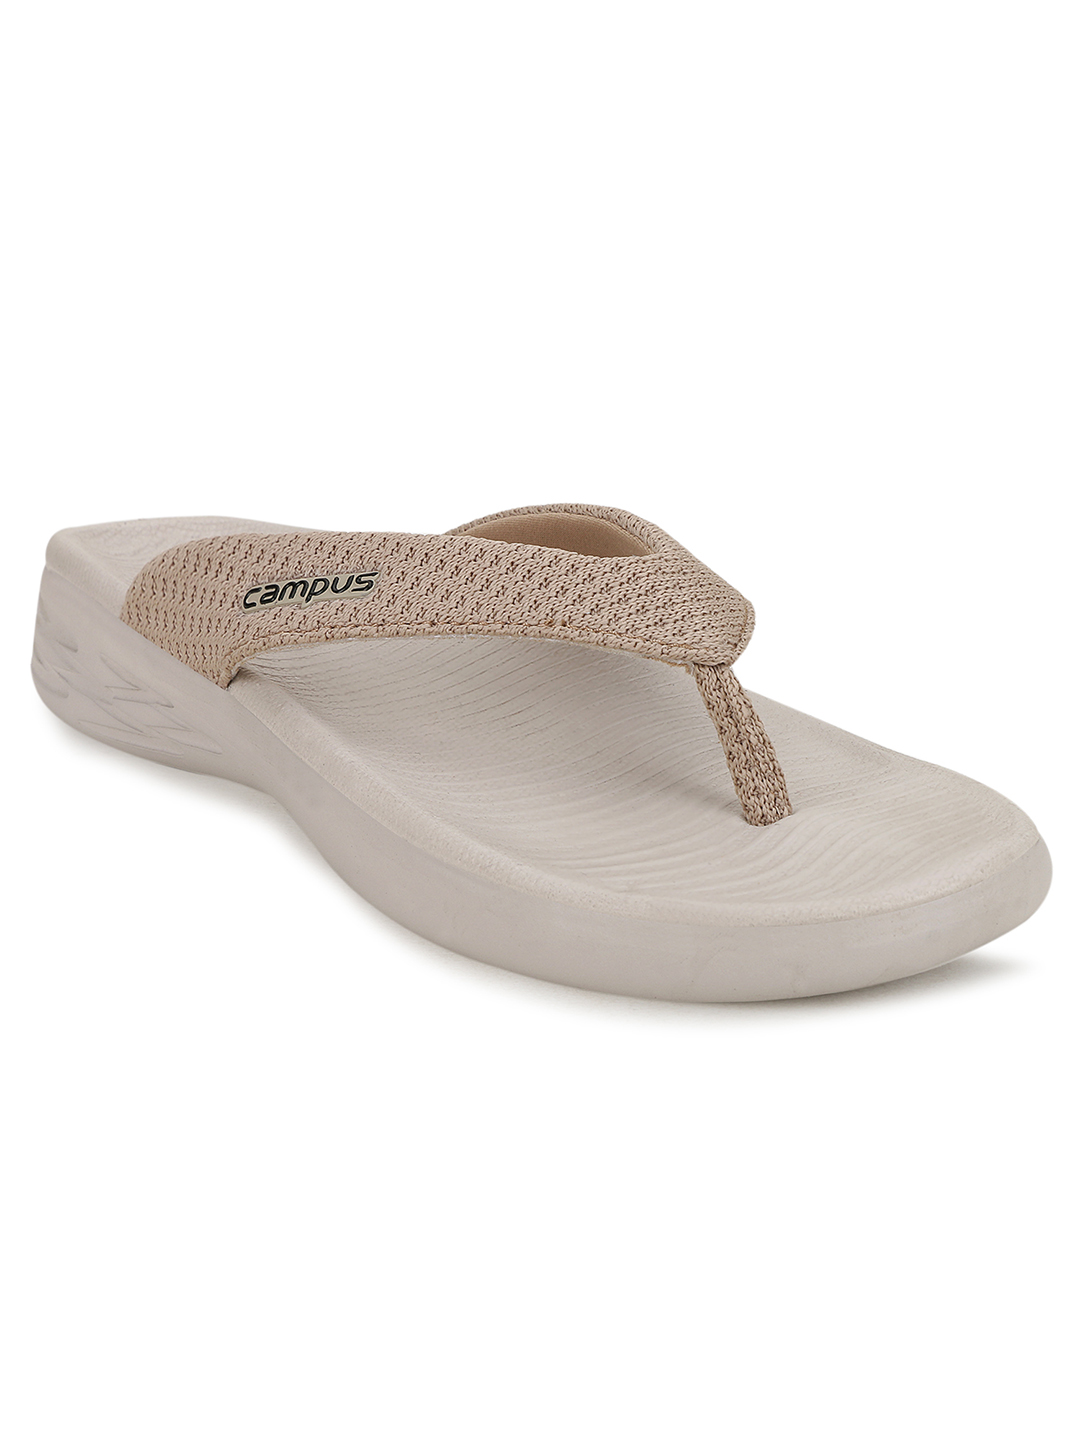 Campus Shoes | Beige Slippers